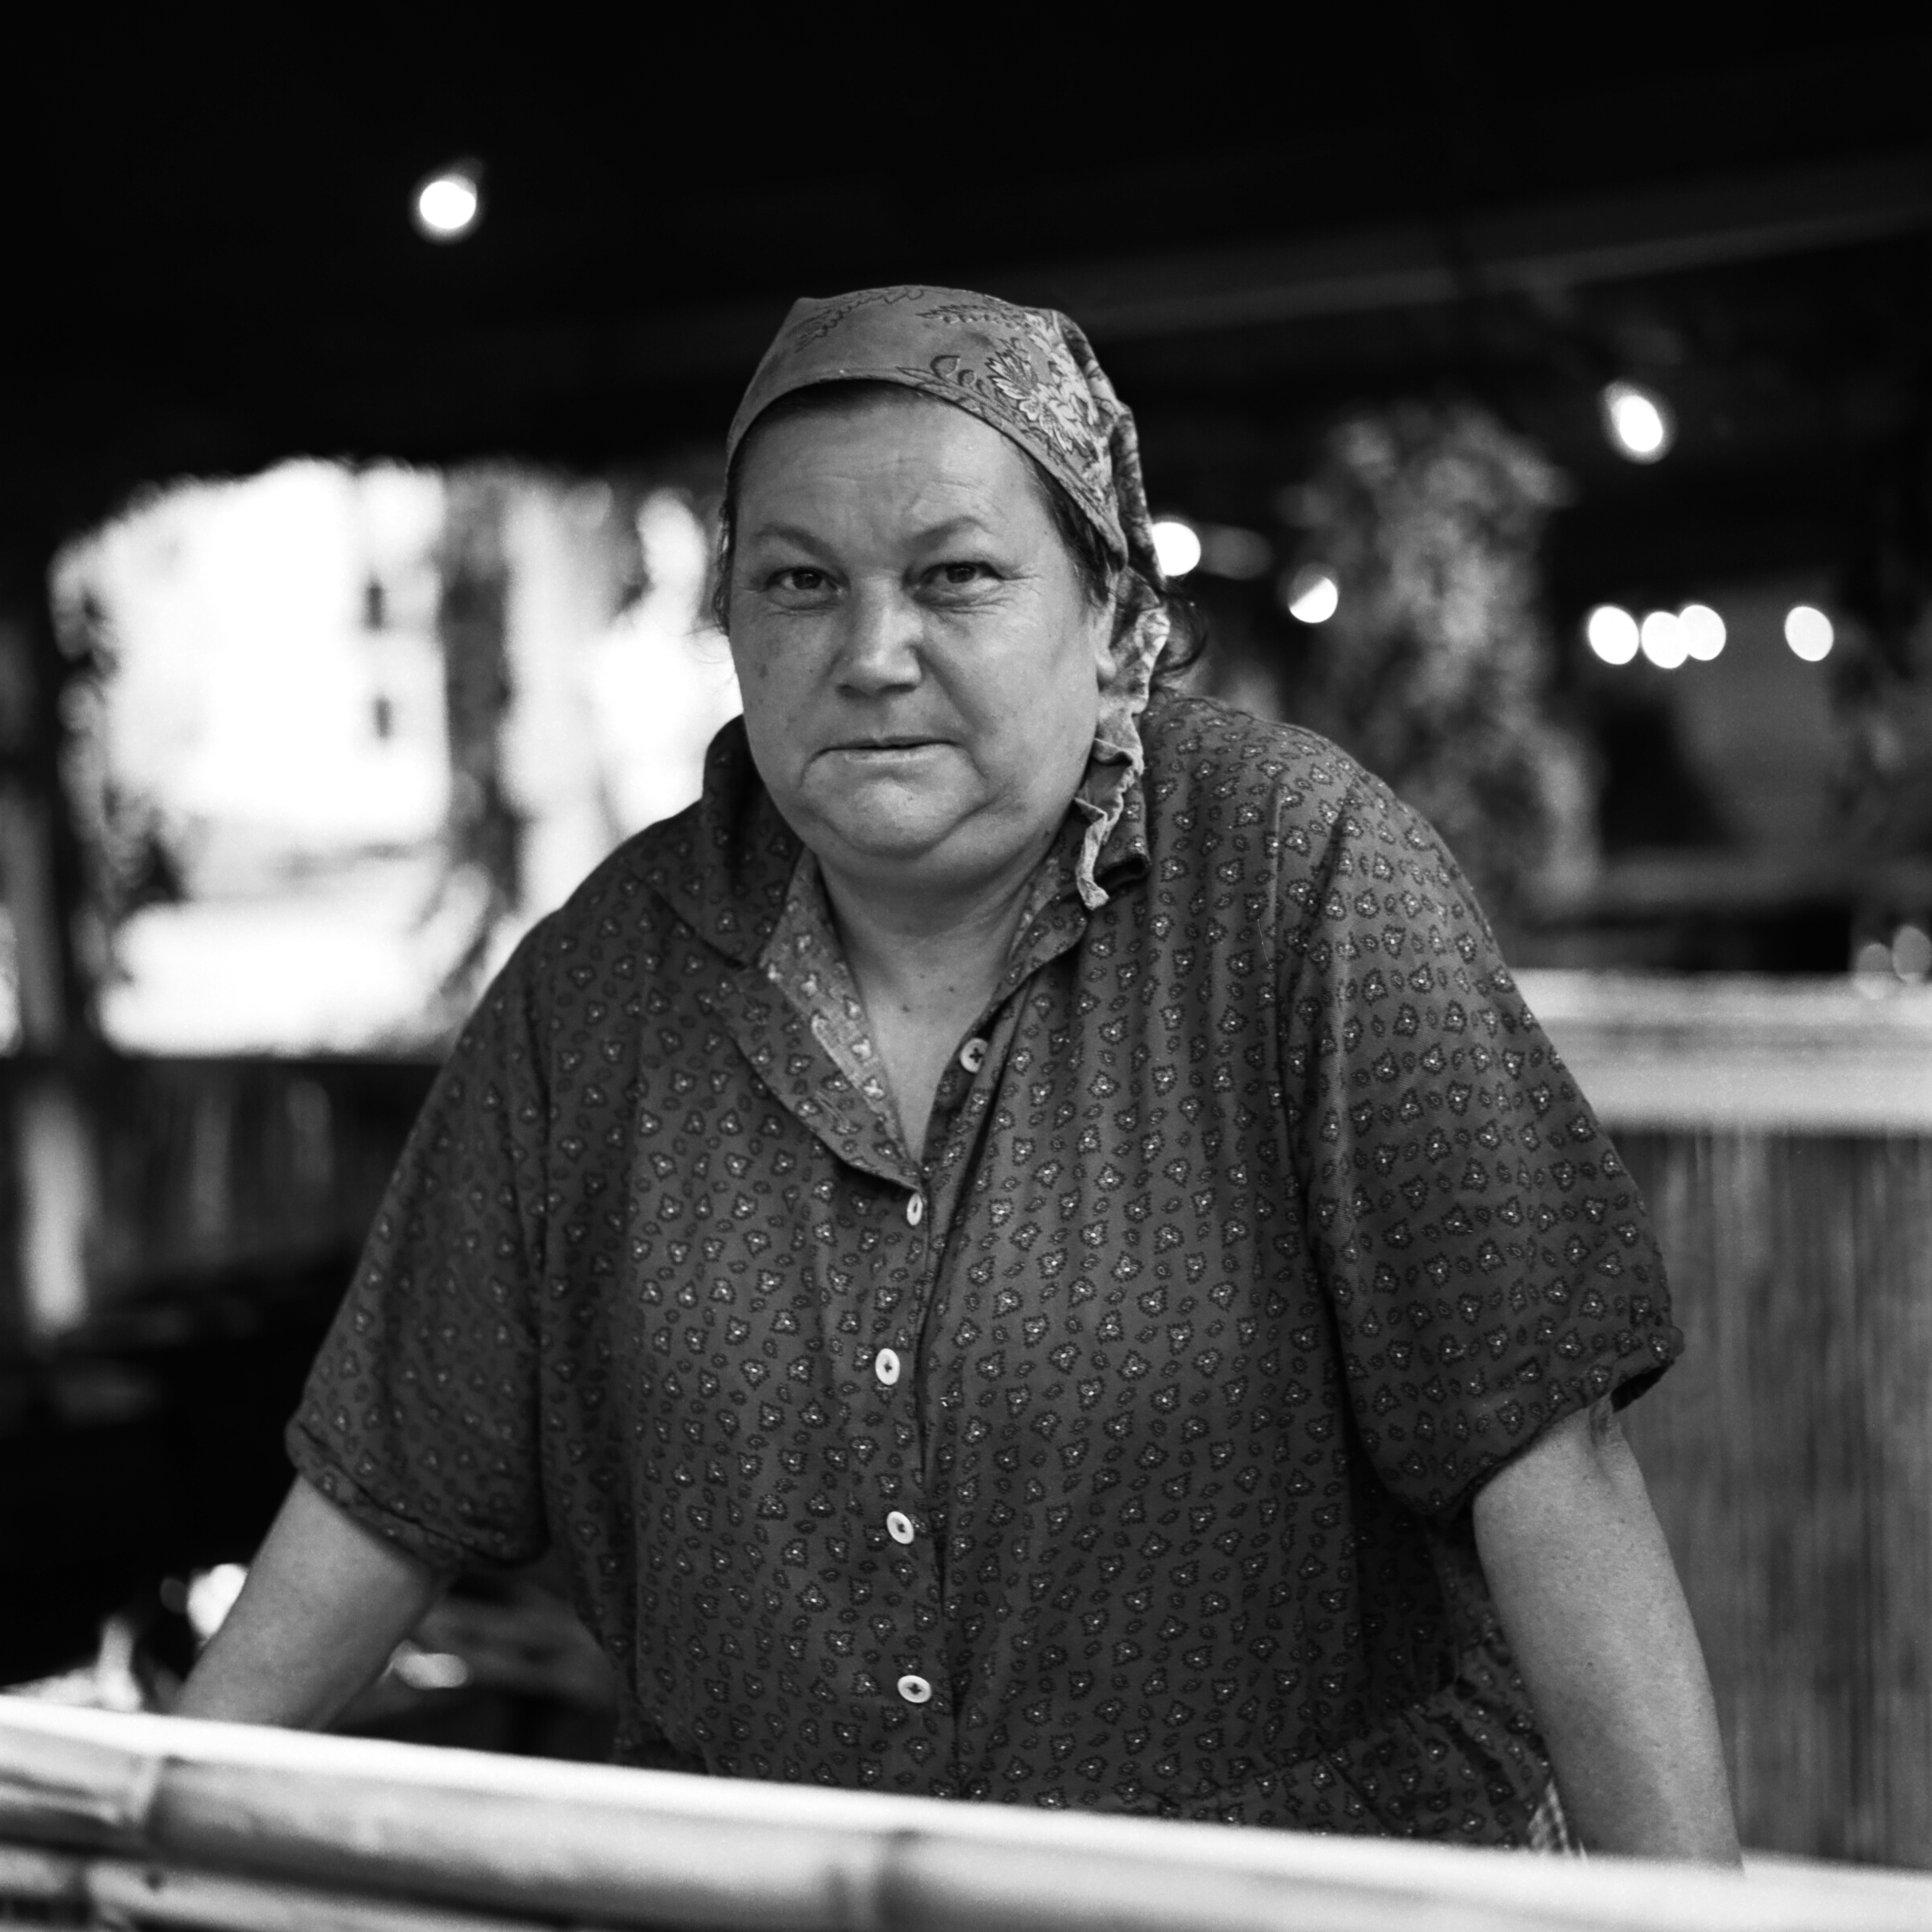 Portrait of a Lady from Madeira's Farm Community by Dan Korkelia